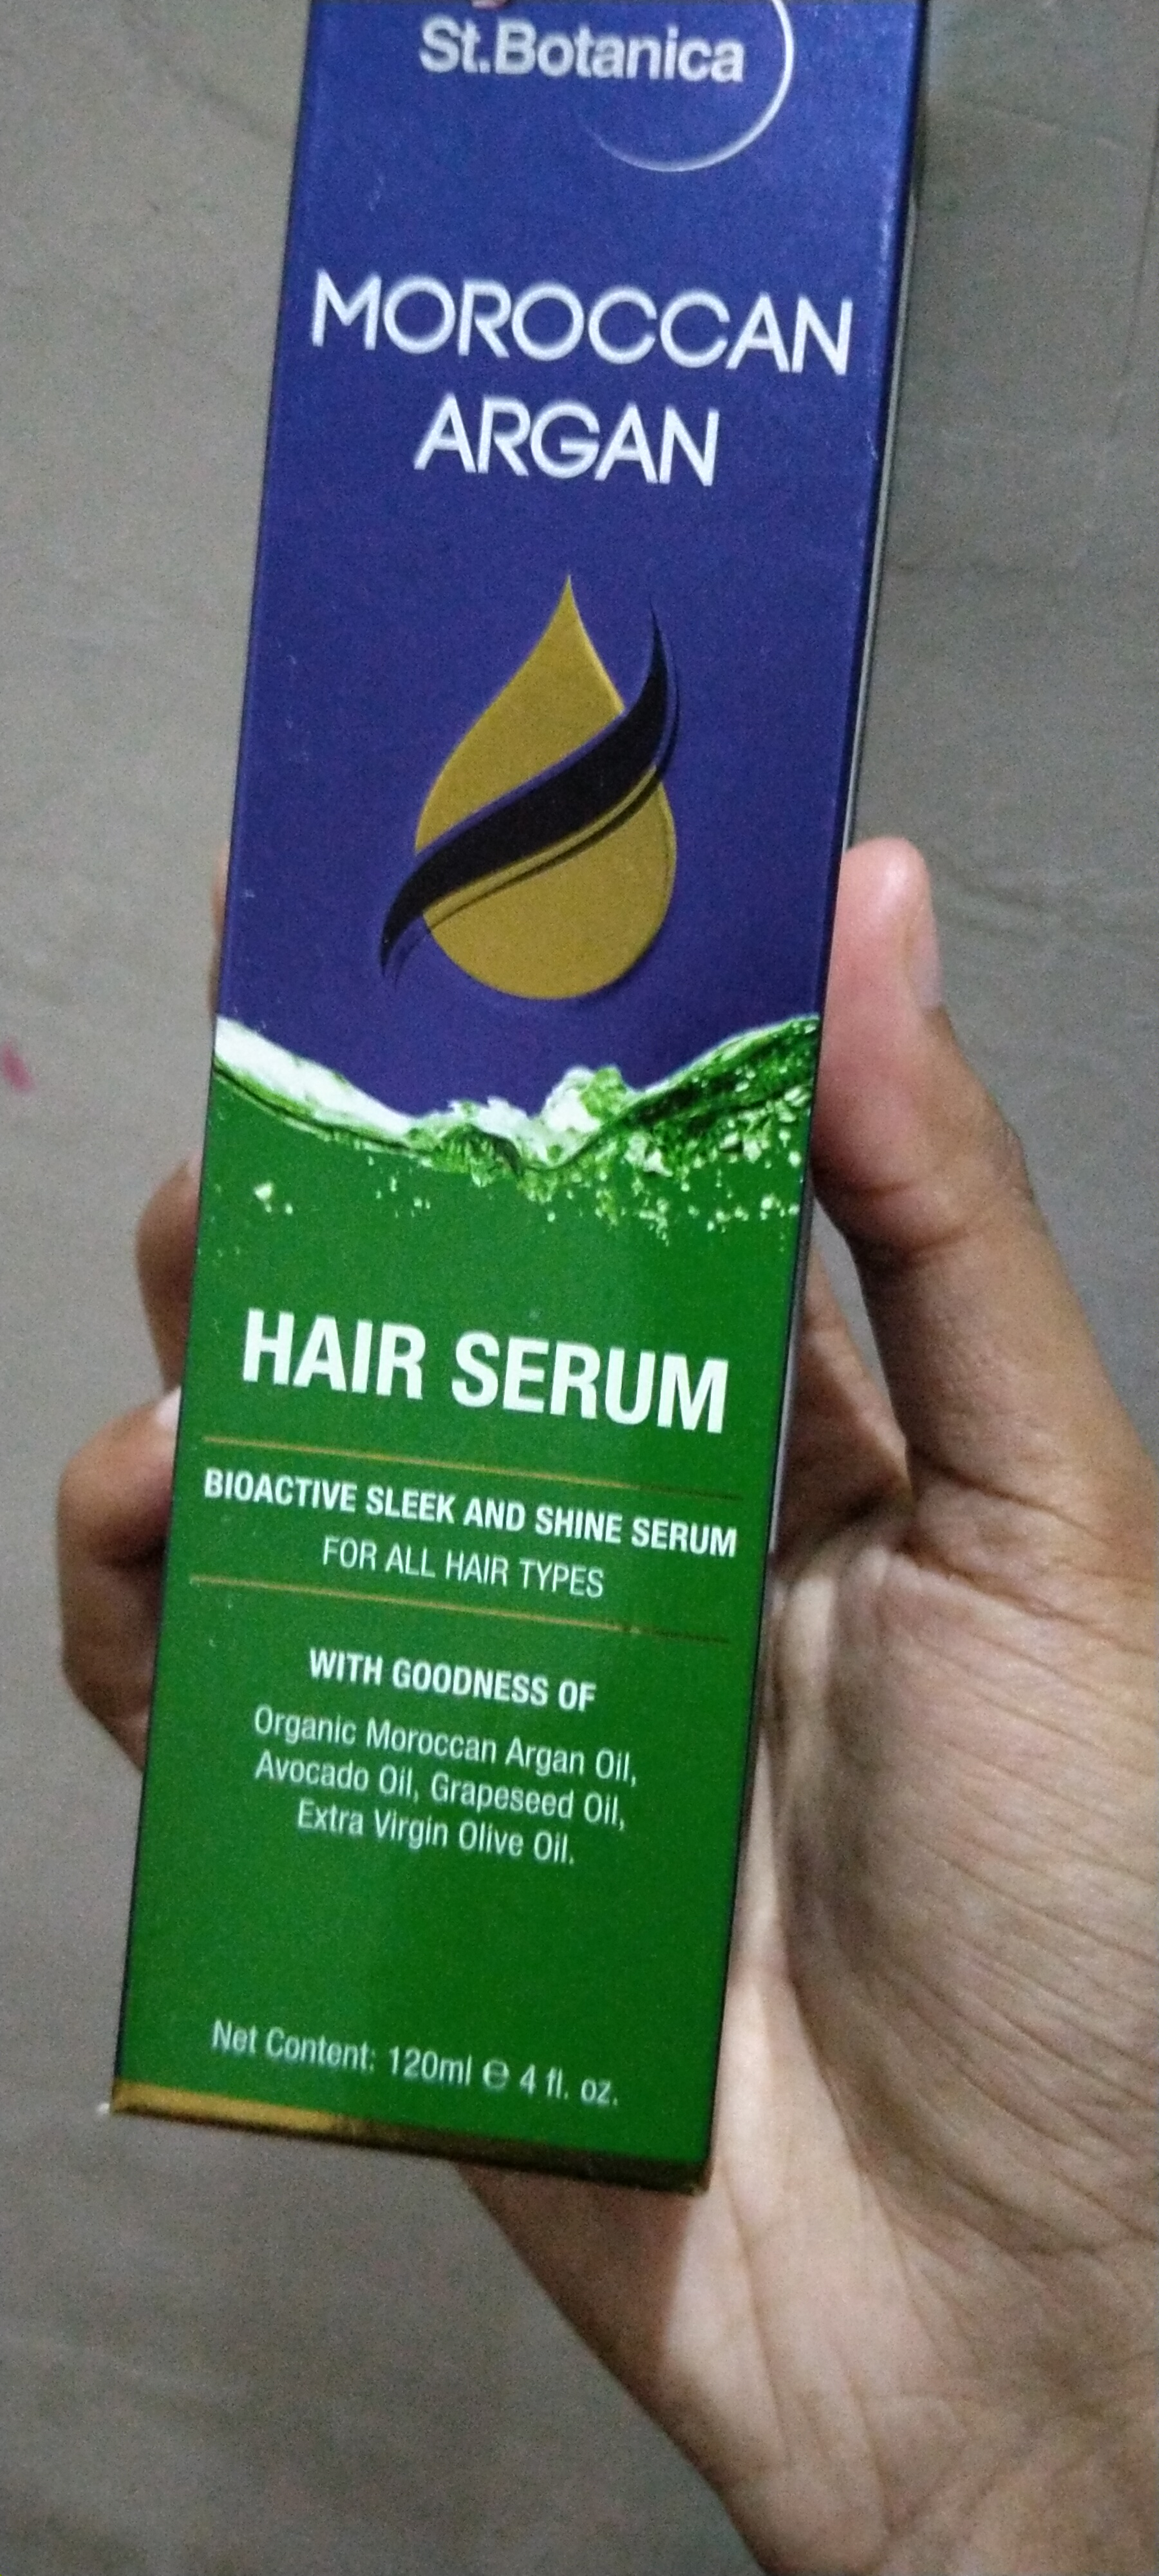 St.Botanica Moroccan Argan Hair Serum-Hair shiny product-By ppvijay